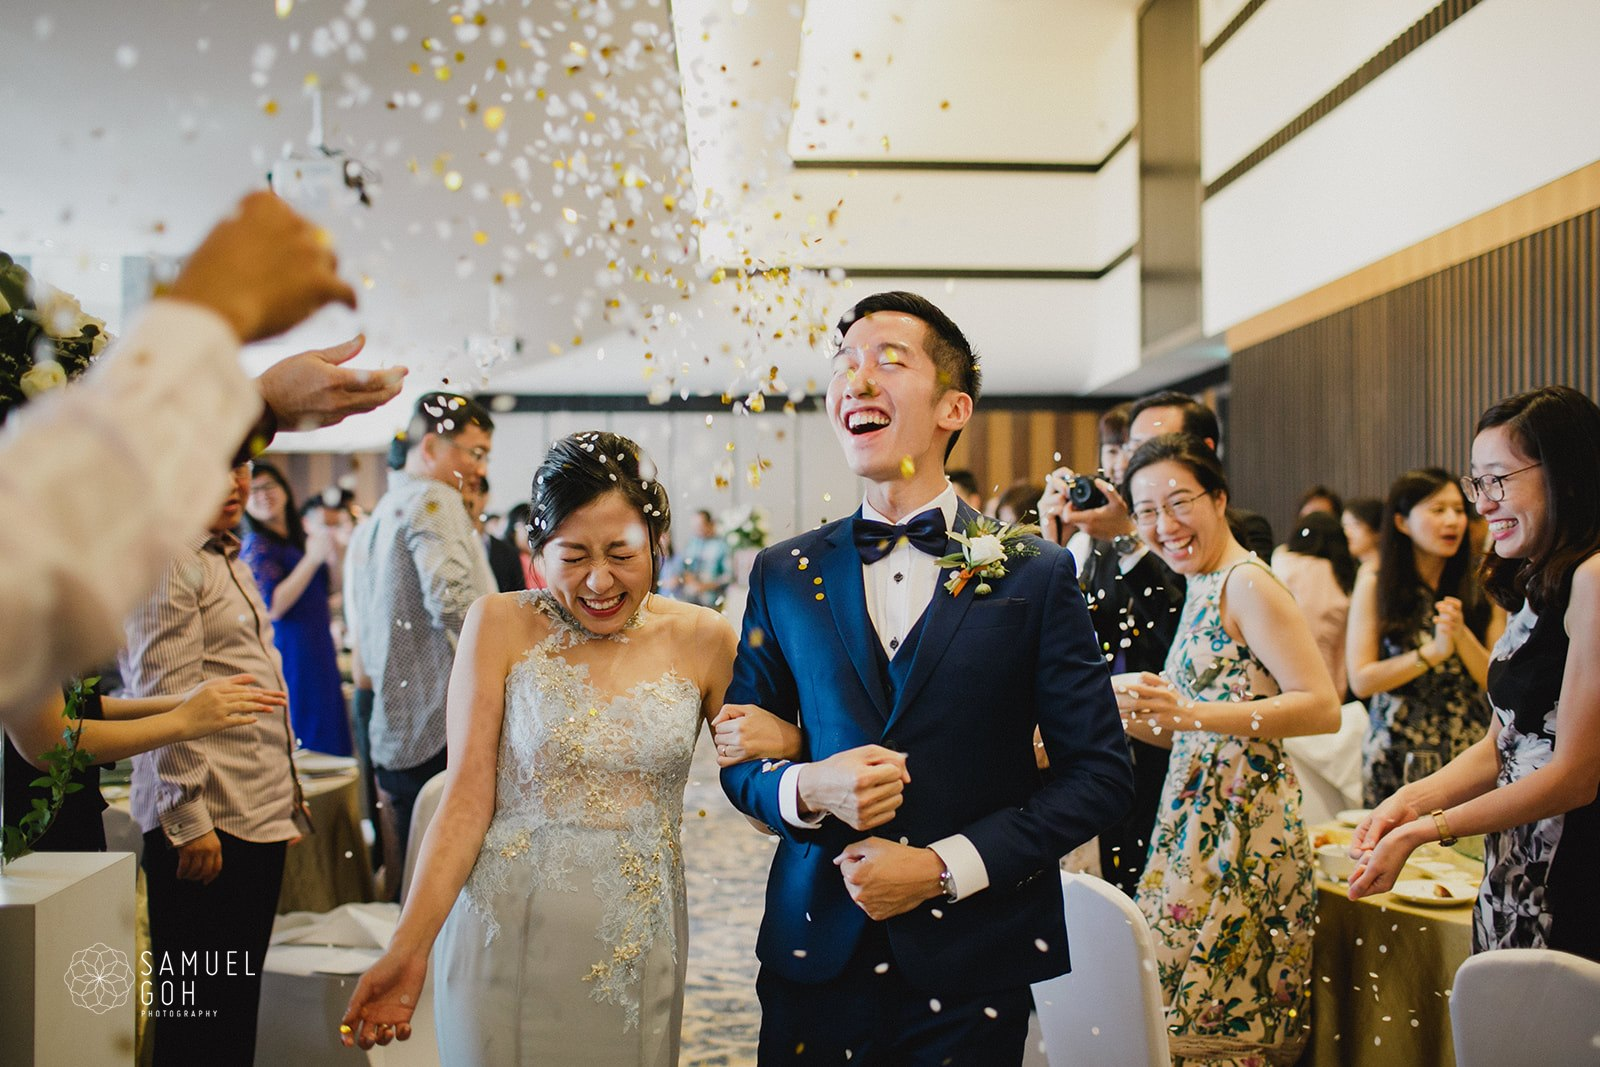 Li Han and Makoto's Wedding Day  (Photographed by Samuel Goh Photography)